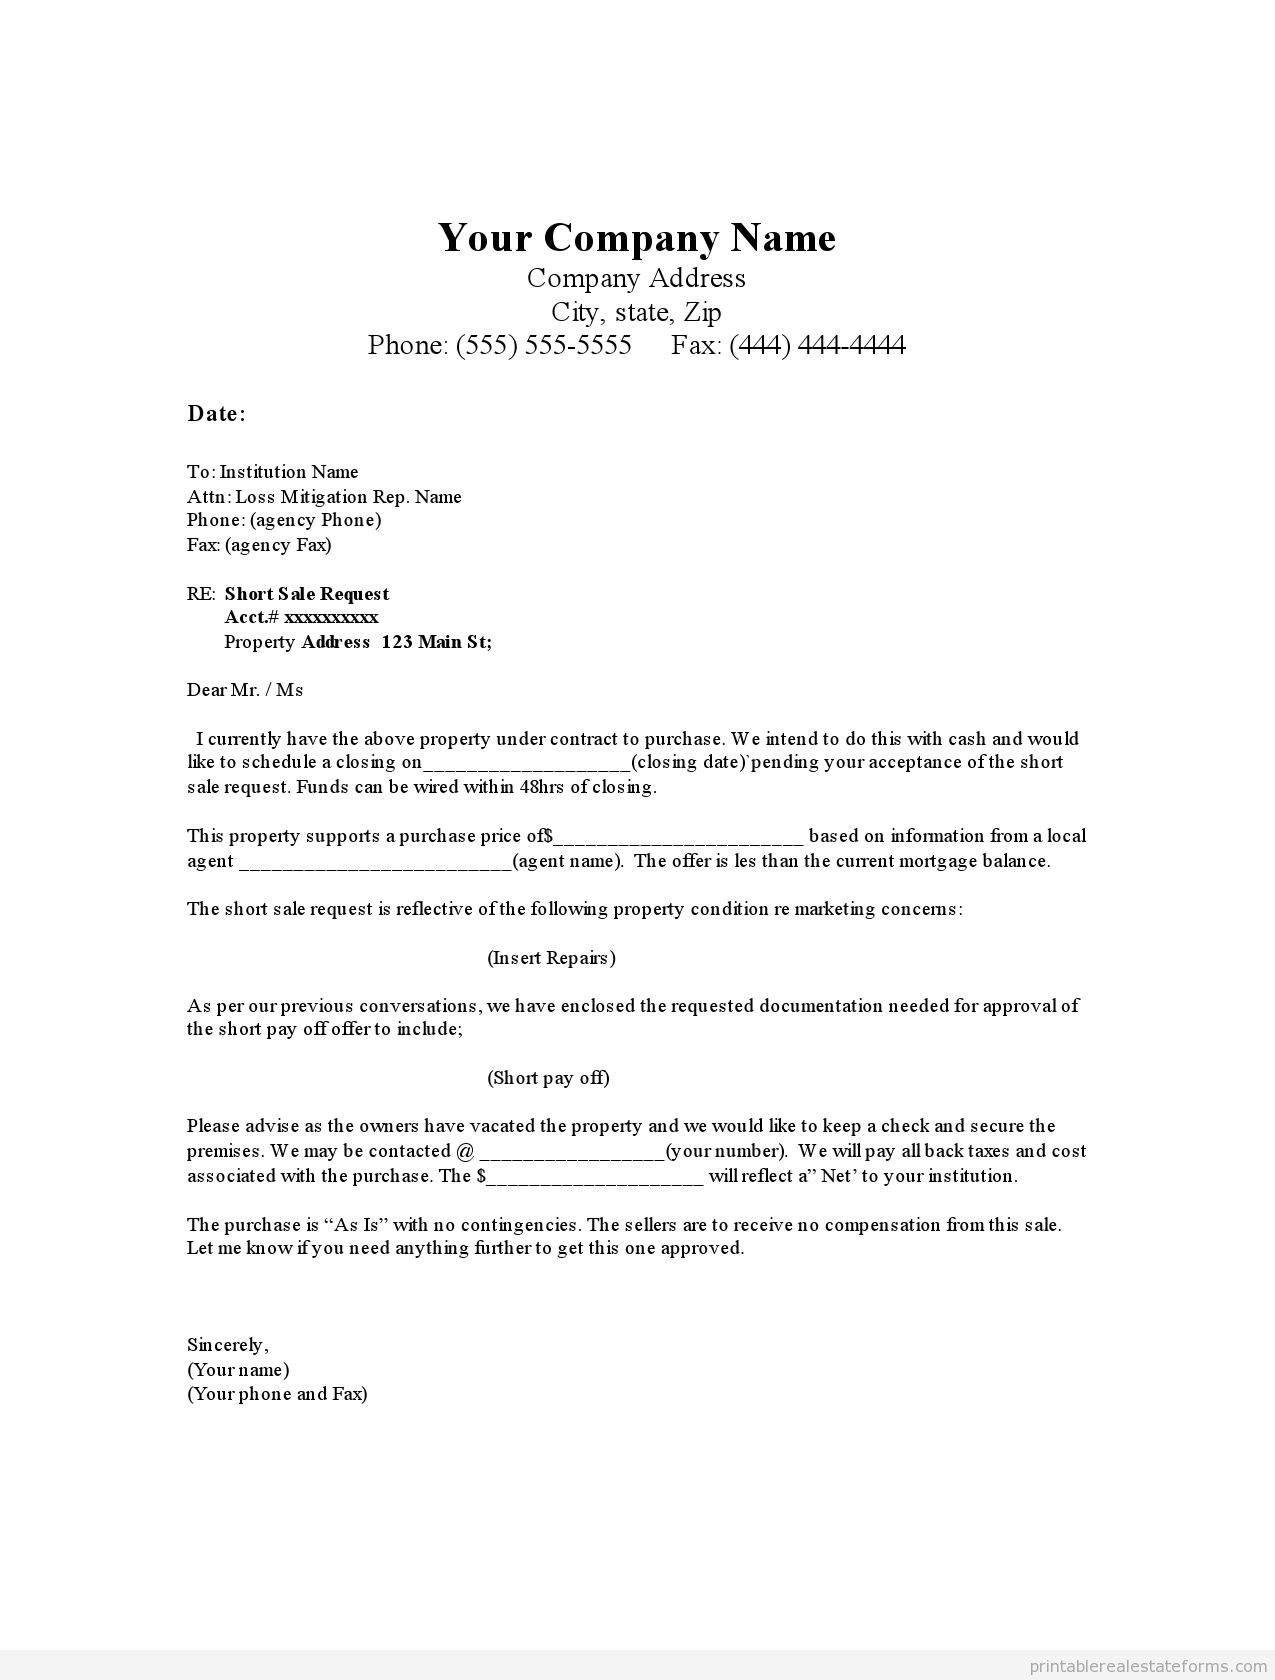 For Sale by Owner Offer Letter Template - Home Fer Letter Template Home Fer Letter Sample Ideas